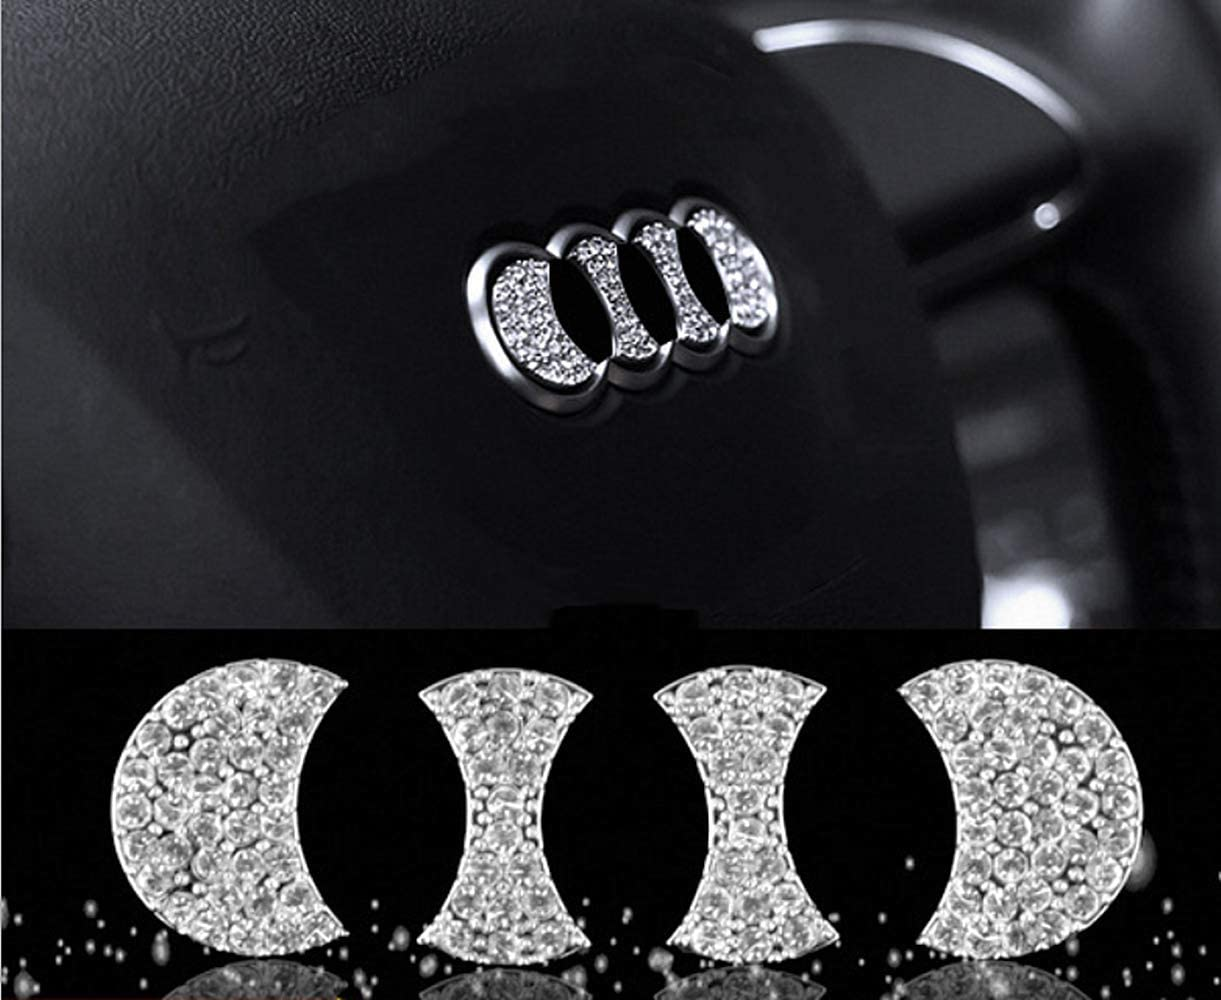 1 Piece//Set Central Control knob Cover HAILWH Fit for Audi Q5 2017-2020 Bling Accessories Multimedia Air Conditioning Central Control Knob Rhinestone Decal Cover Sticker Wreath